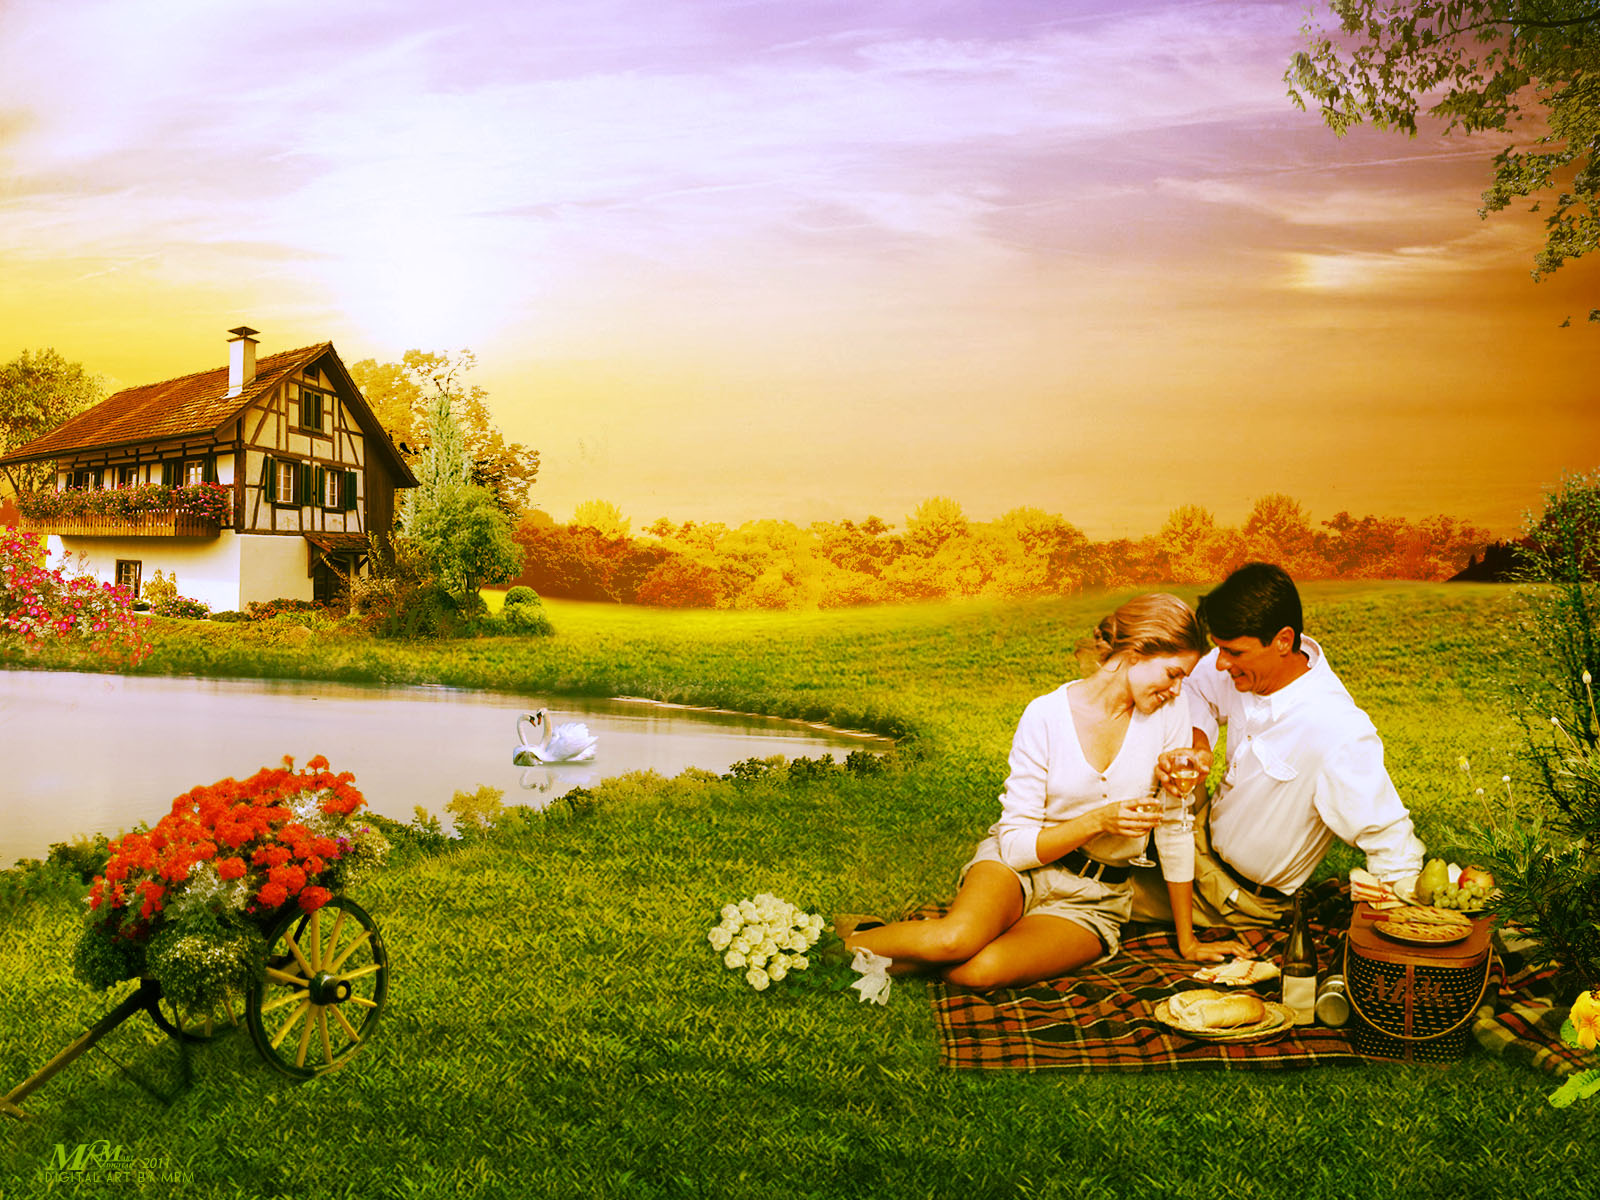 Beautiful Romantic Love Hd Wallpapers For Couples: Desktop Wallpapers,Animals Wallpapers,Flowers Wallpapers